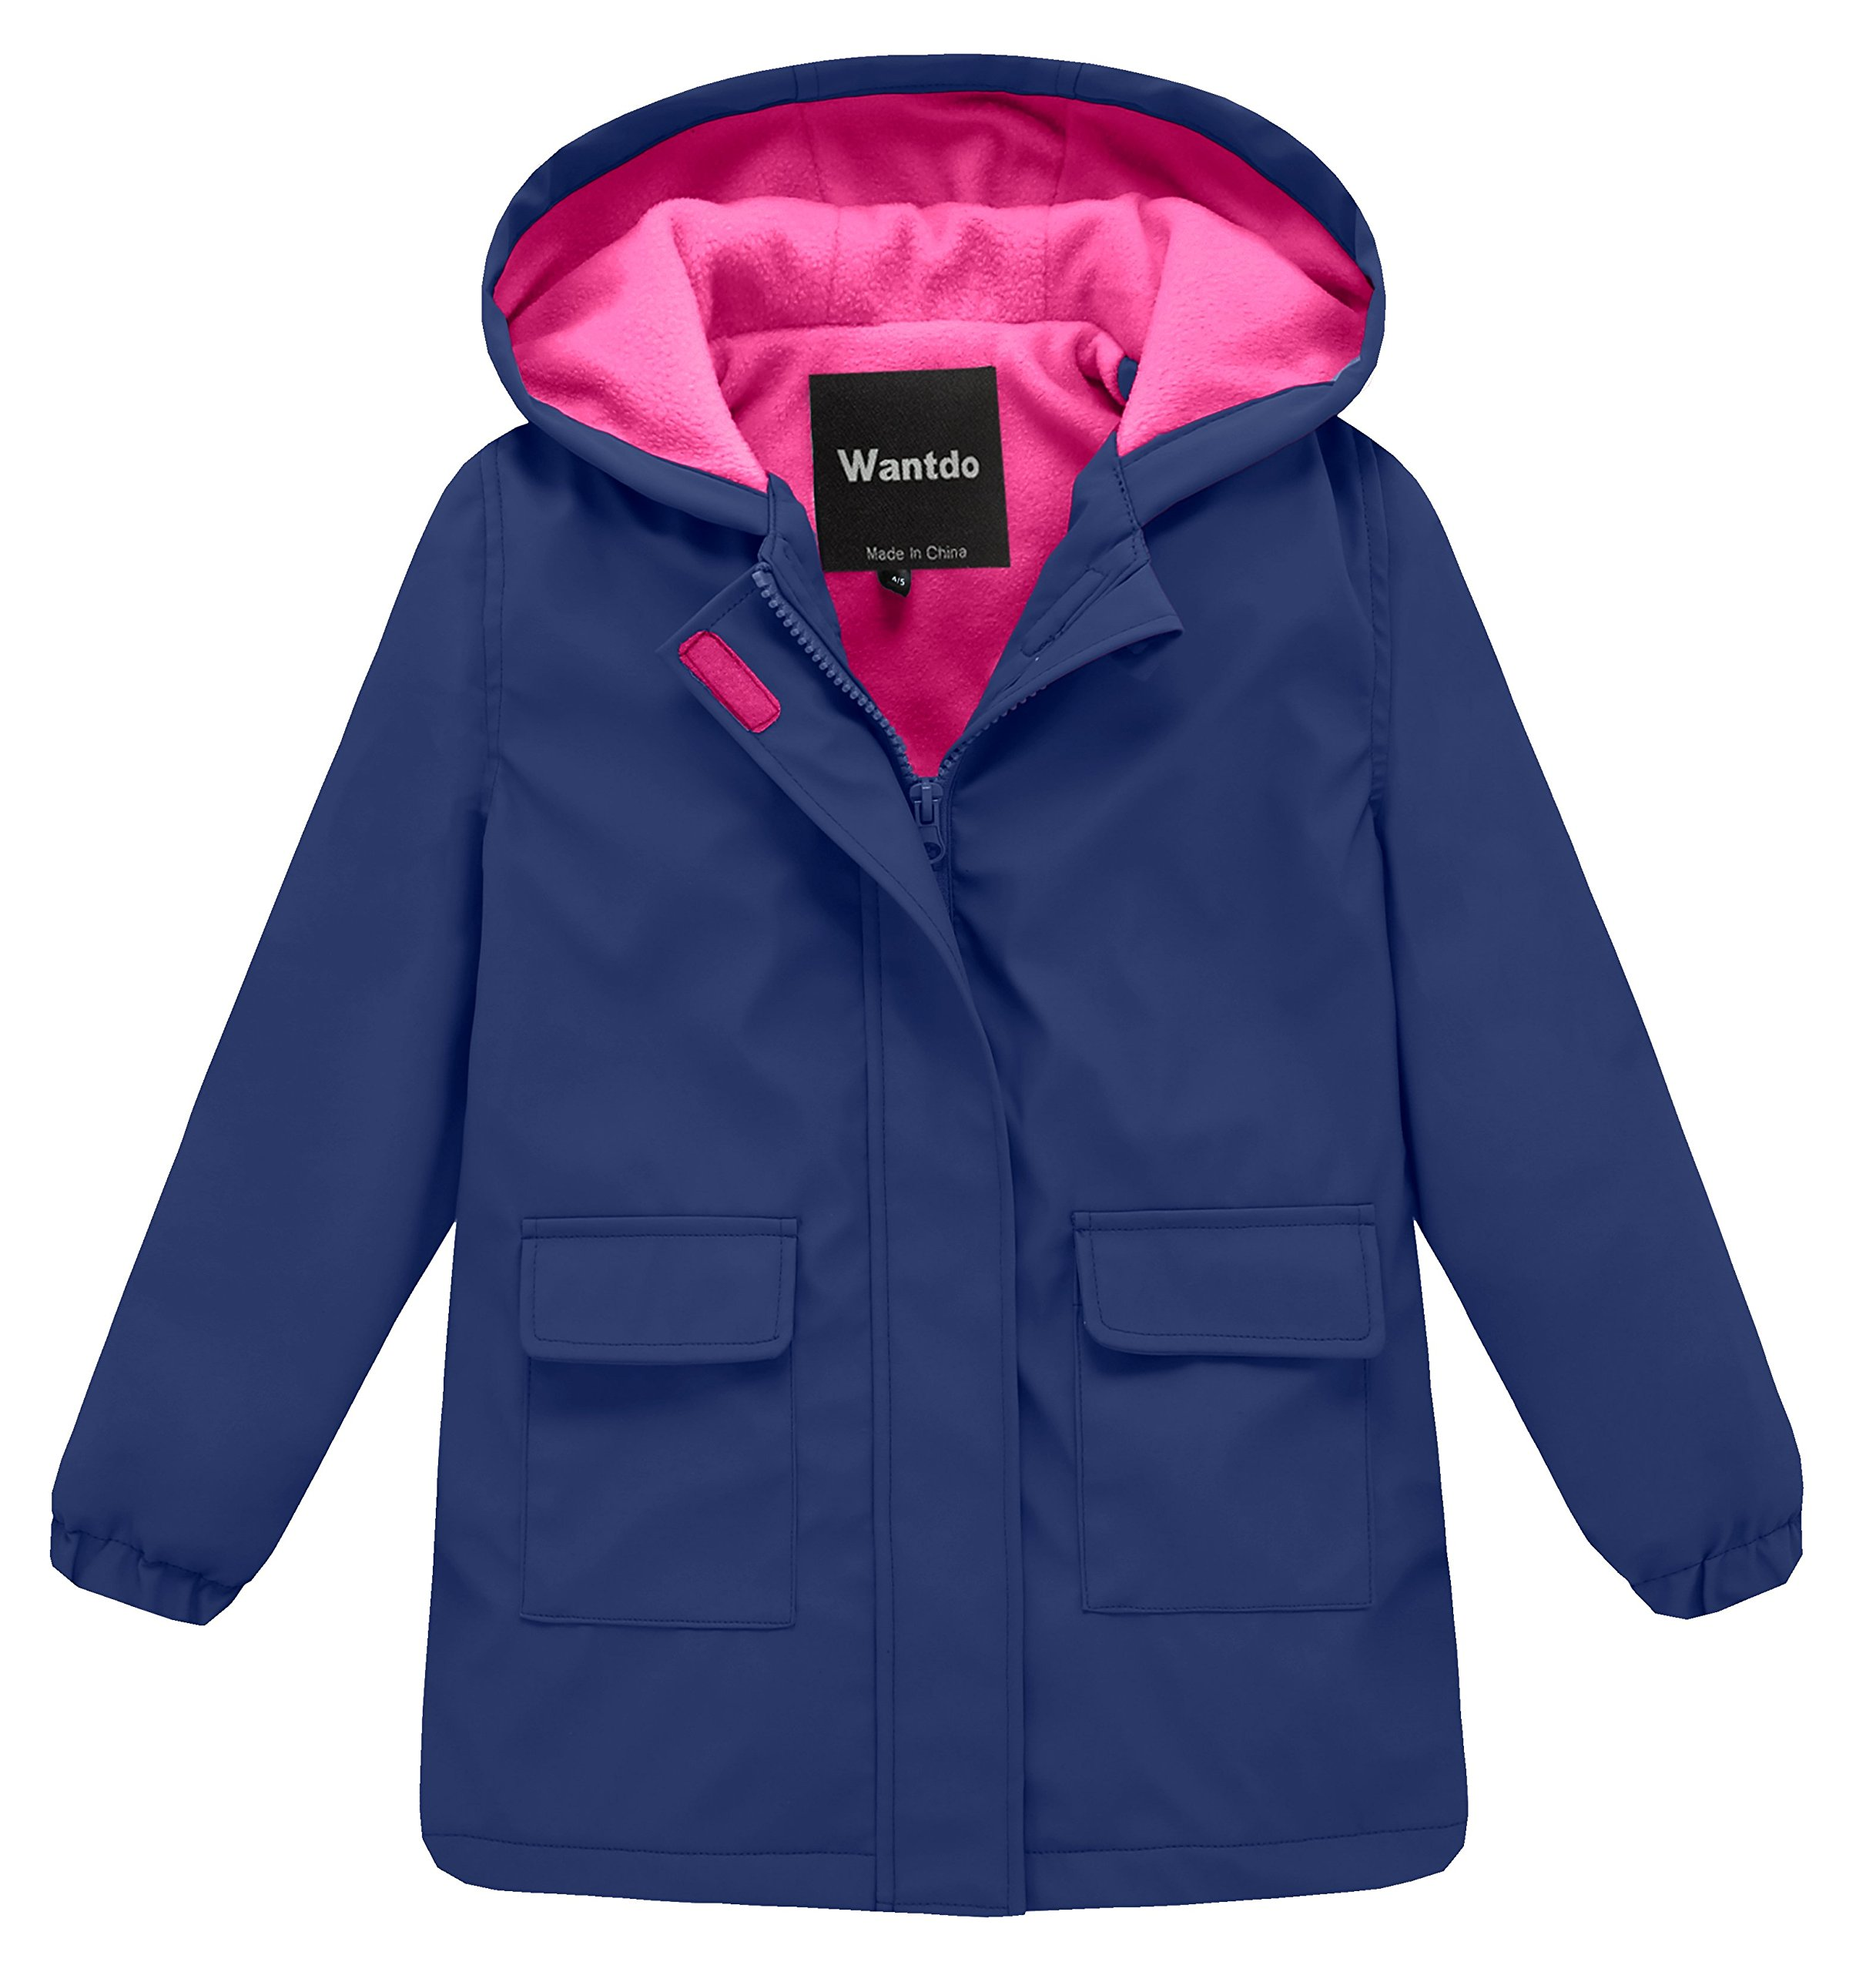 Wantdo Girl's and Boy's Hooded Rain Jacket Waterproof Fleece Lined Windbreaker(Navy, 4-5Y) by Wantdo